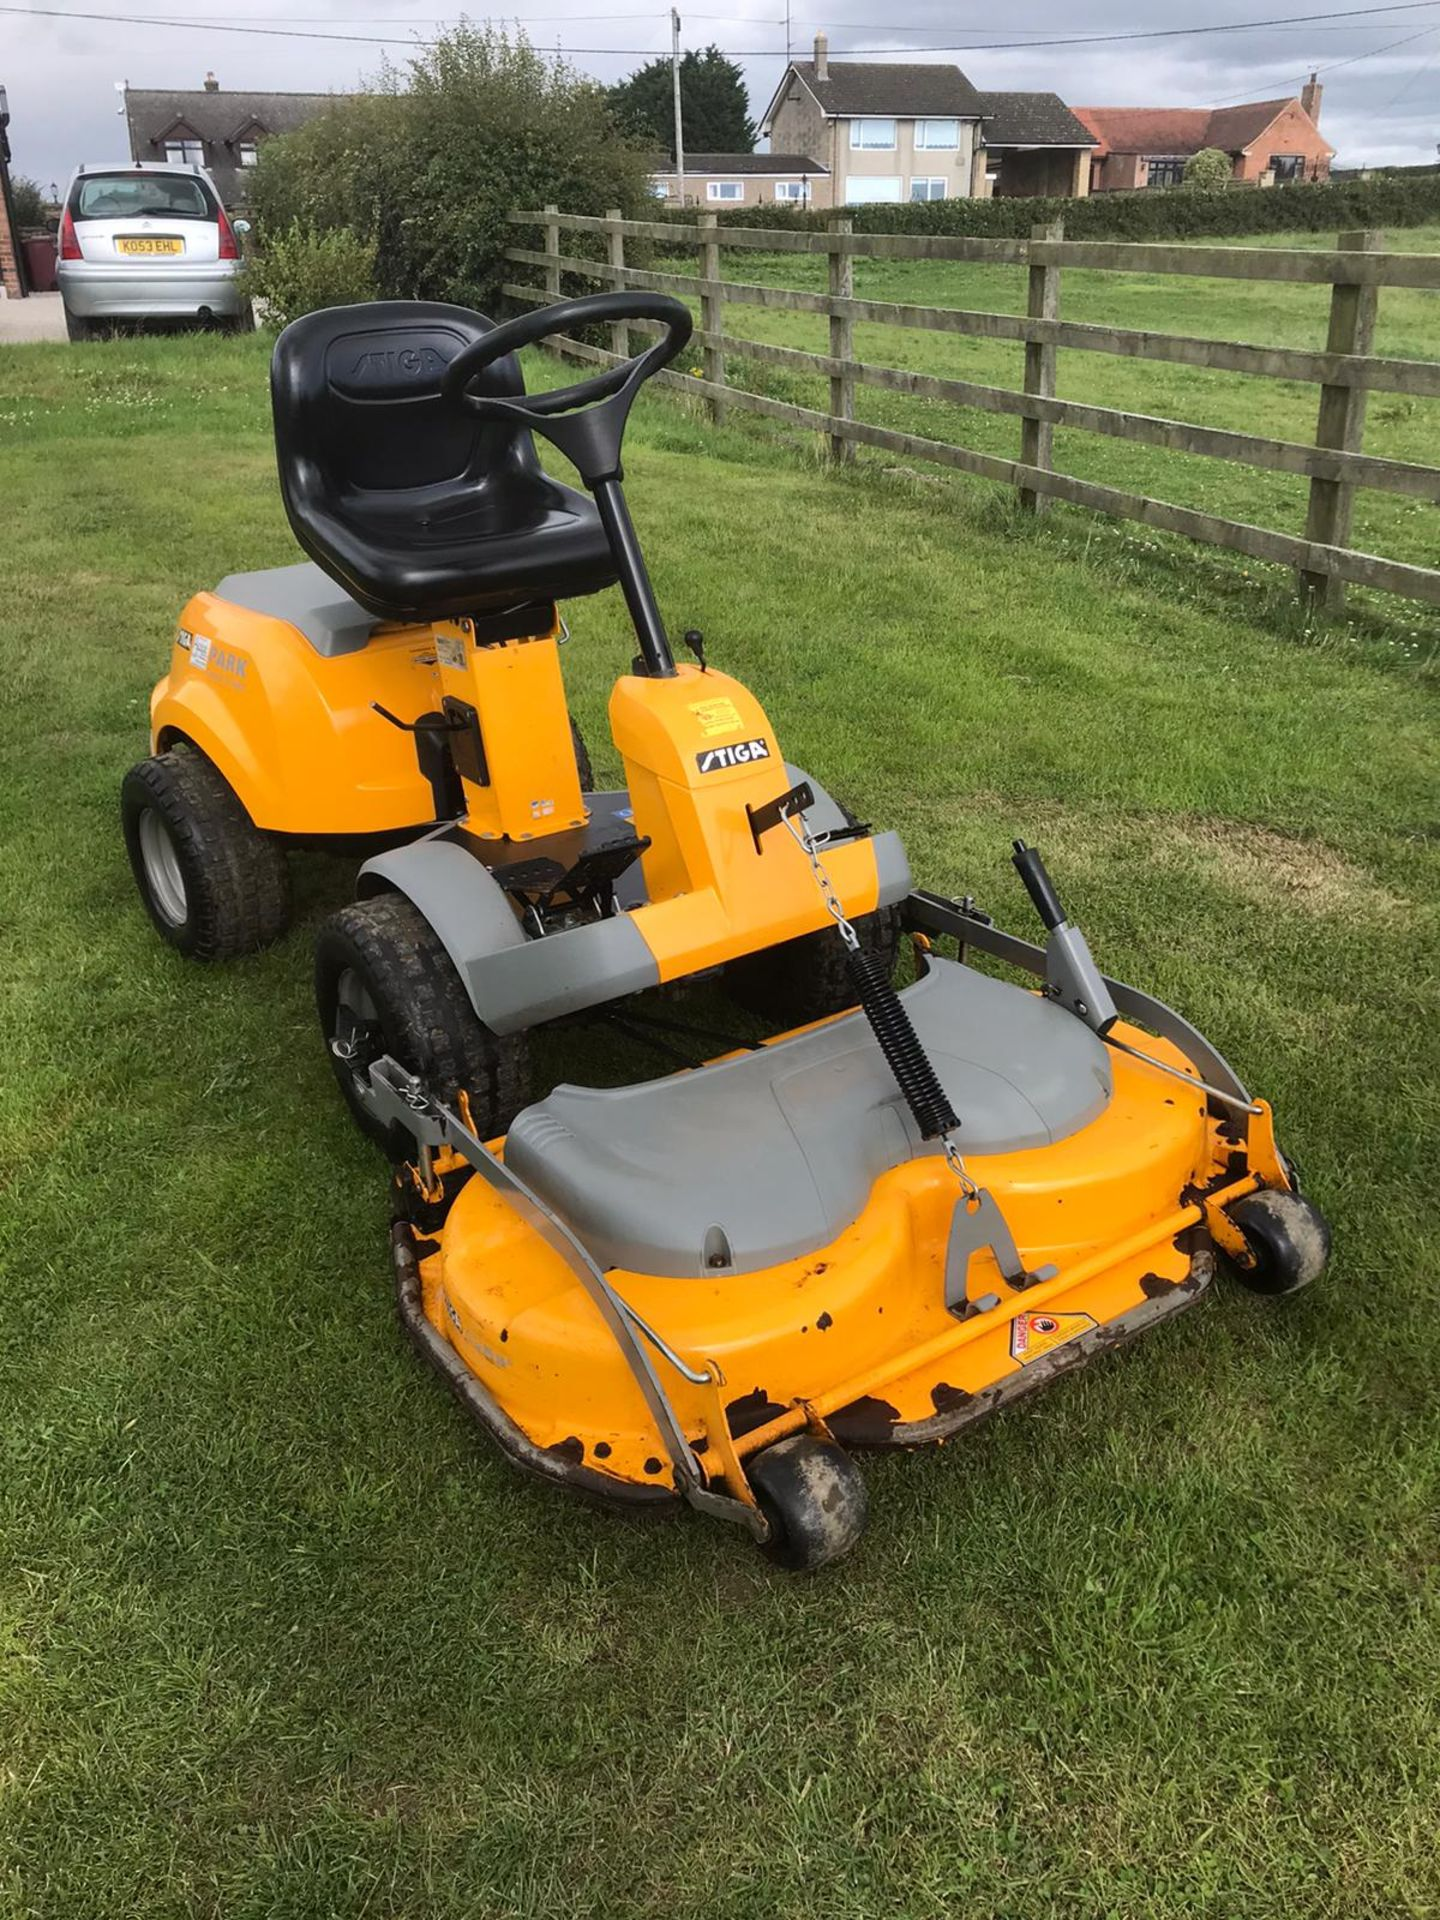 Lot 22 - STIGA COMPACT 16 4WD RIDE ON LAWN MOWER, RUNS, DRIVES AND CUTS, OUTFRONT DECK, CLEAN MACHINE *NO VAT